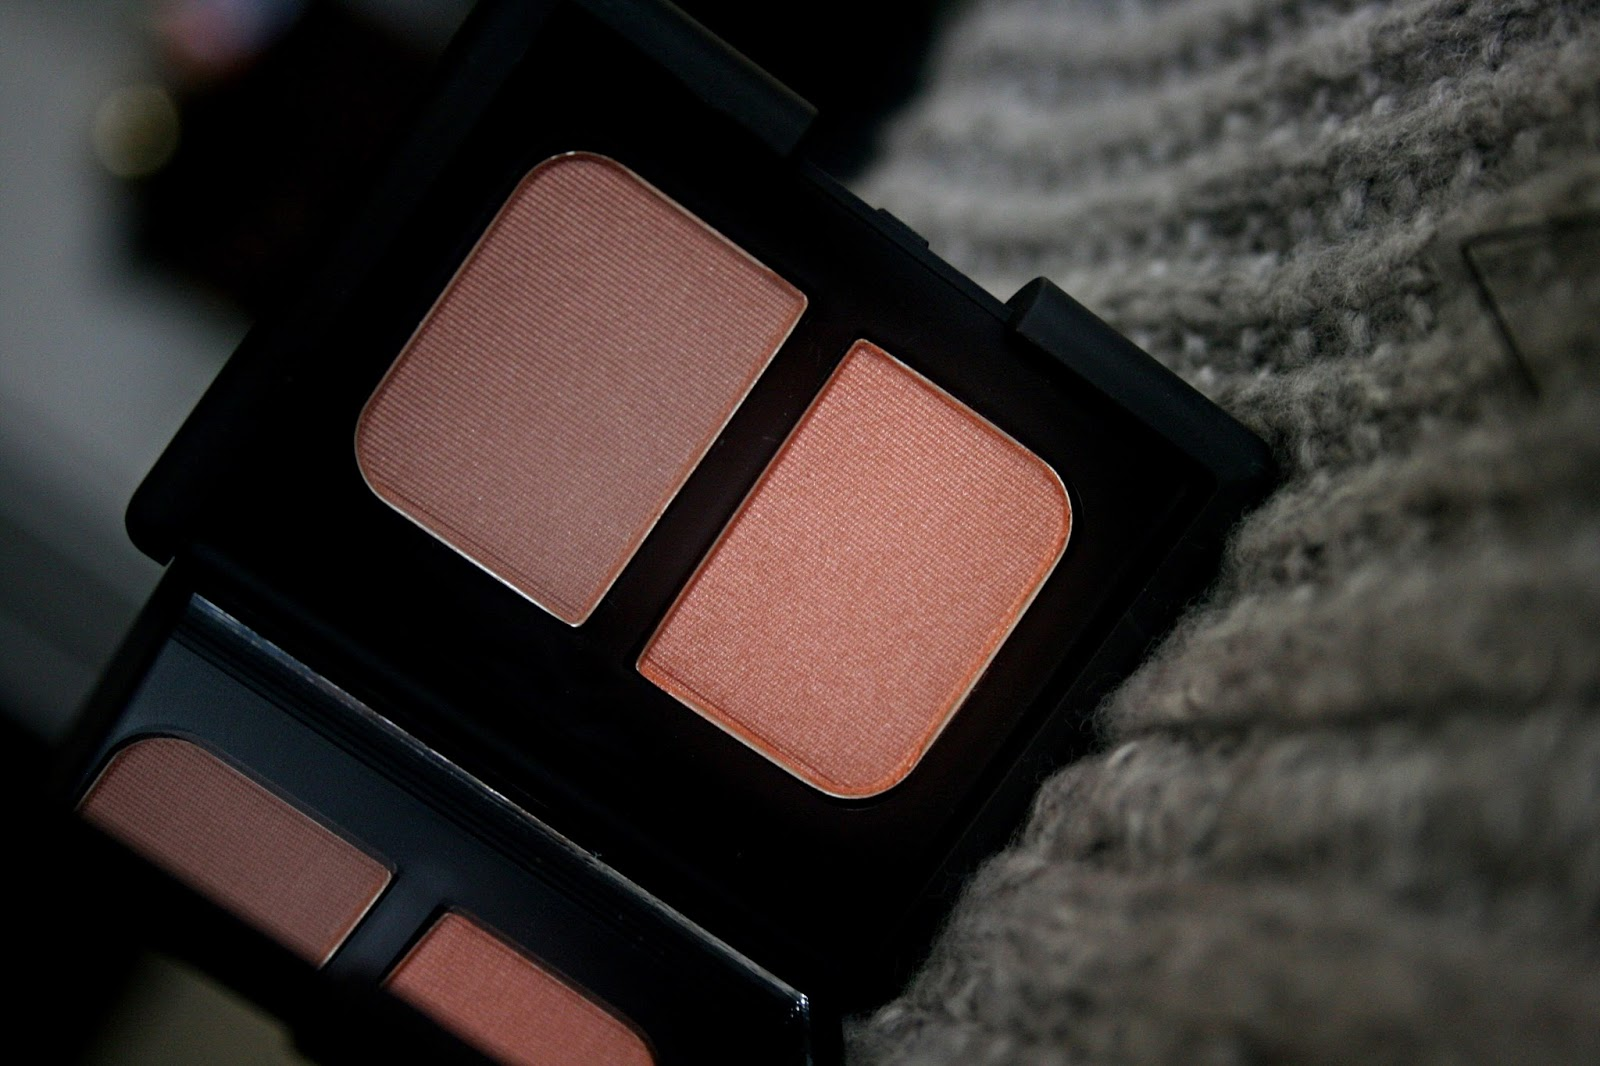 NARS Valhalla Shimmer Eye Shadow and St-Paul-De-Vence Eyeshadow Duo NARS Spring 2015 Collection